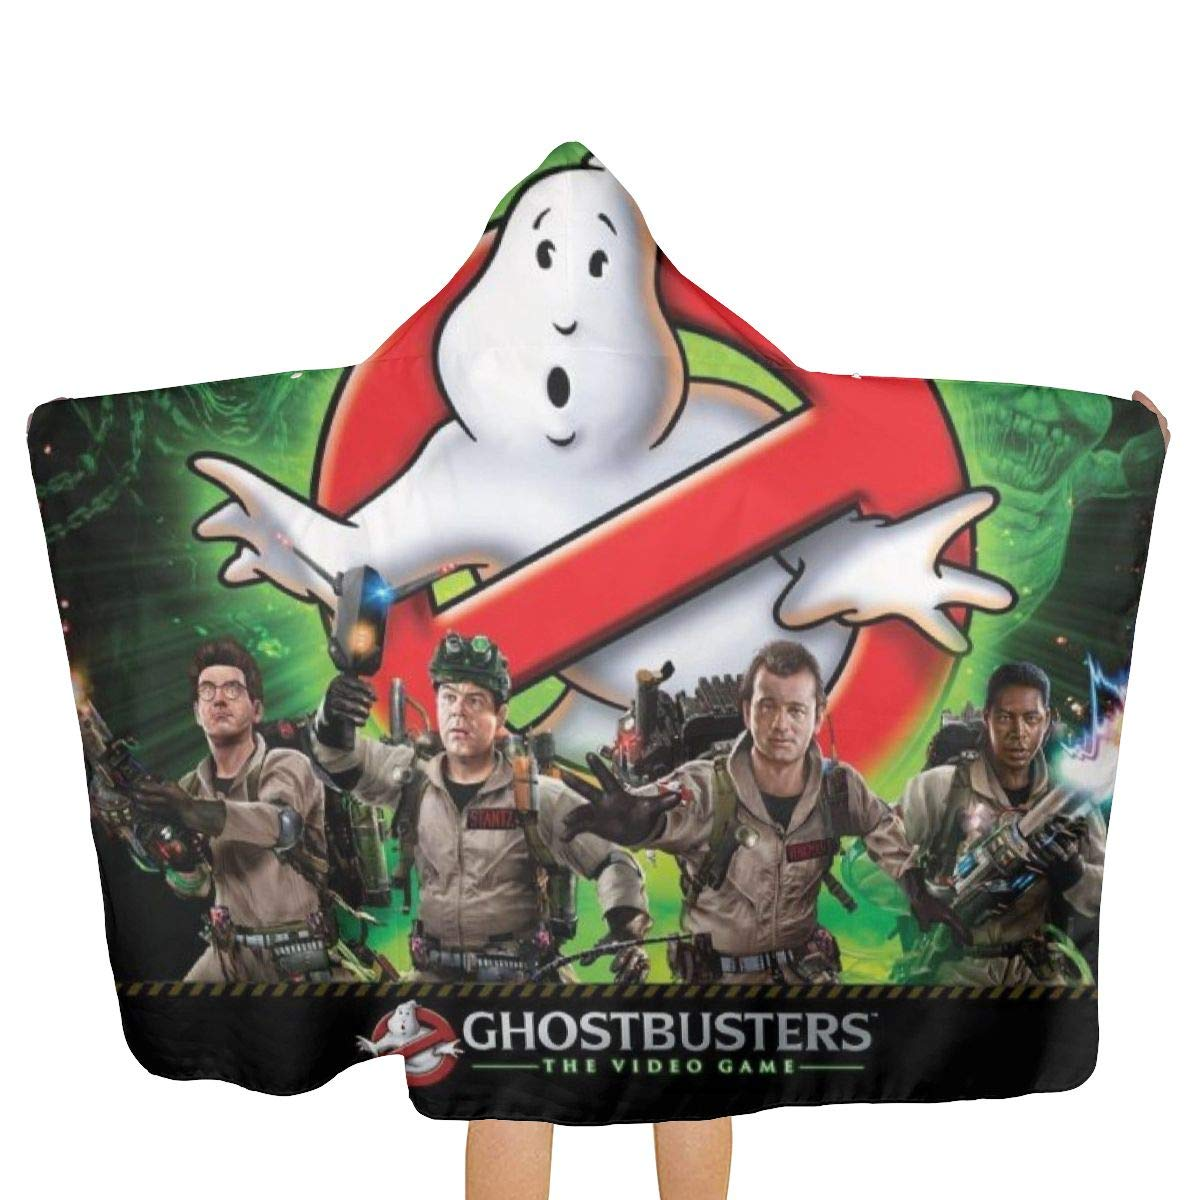 Ghostbusters Hooded Bath/Pool/Beach Towel Soft Hooded Throw Blanket Wearable Hooded Blanket for Adult and Kids by BurnNow (Image #2)